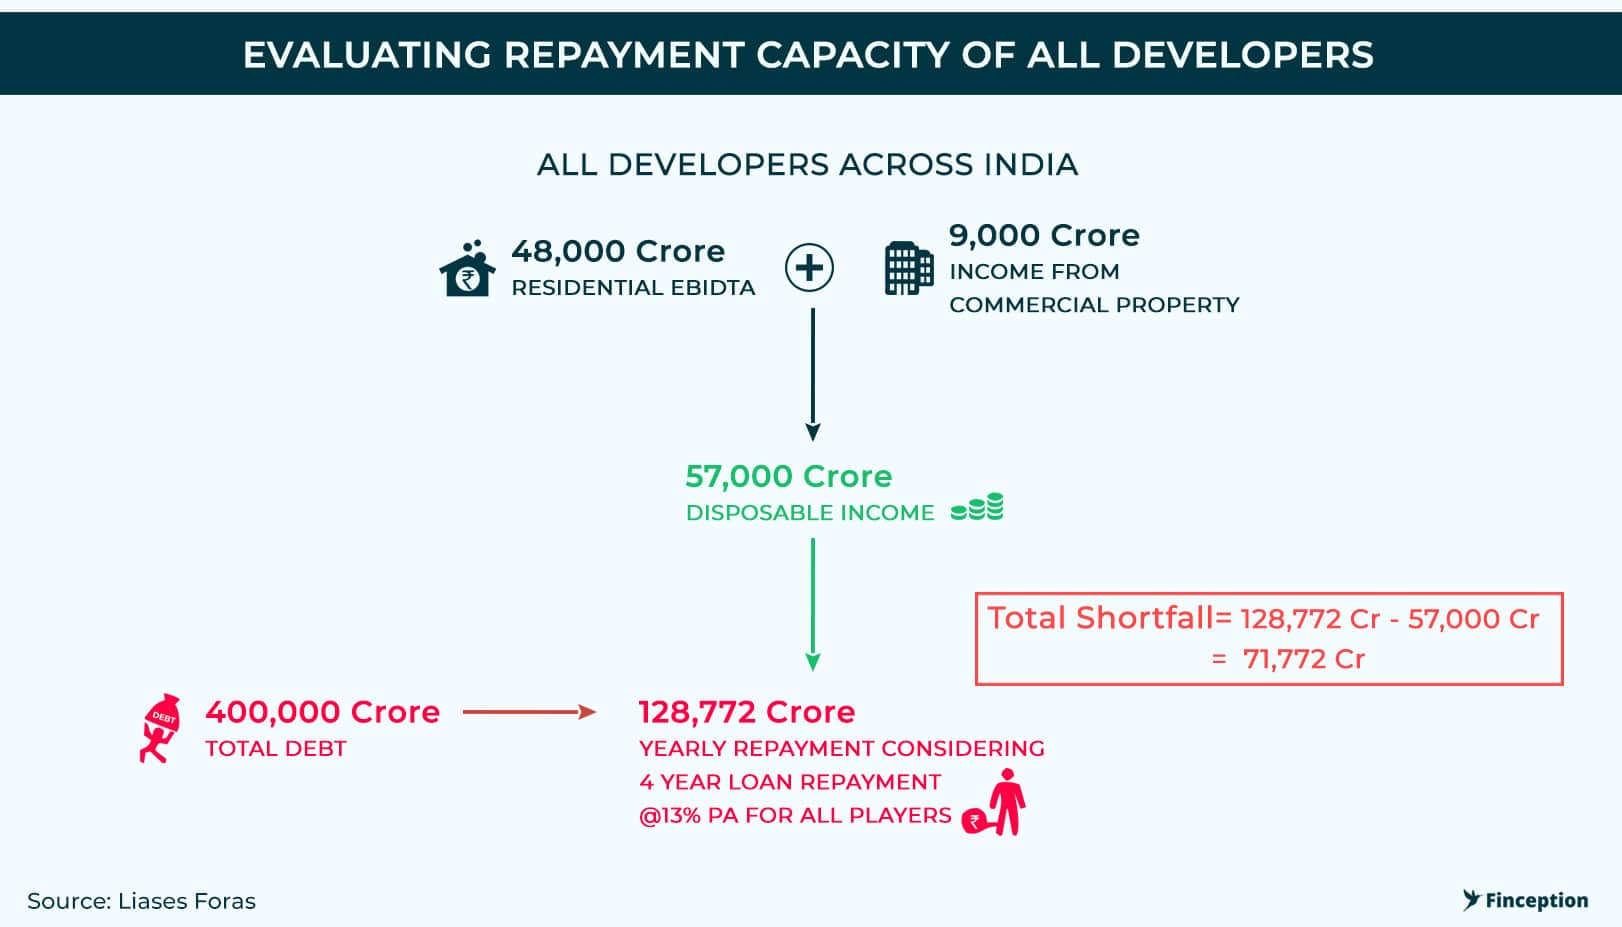 Repayment Capacity of Developers